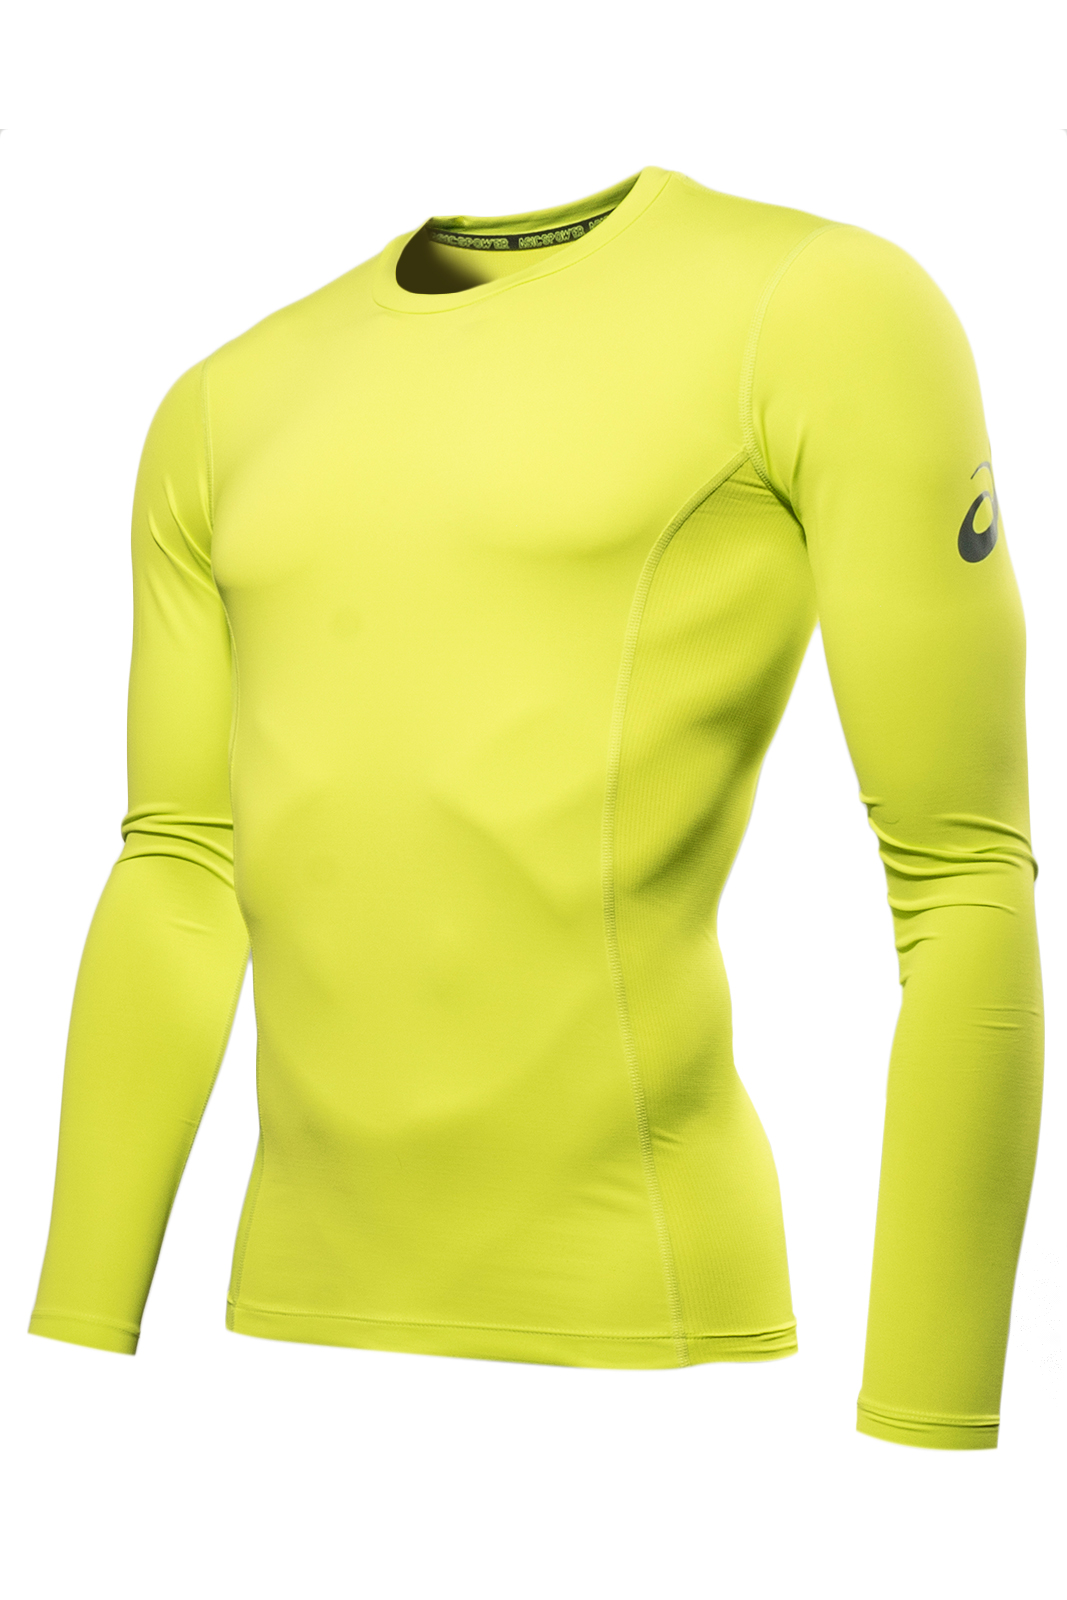 available from 10.11 yellow sports long sleeve men 144476-0432 товары для дома